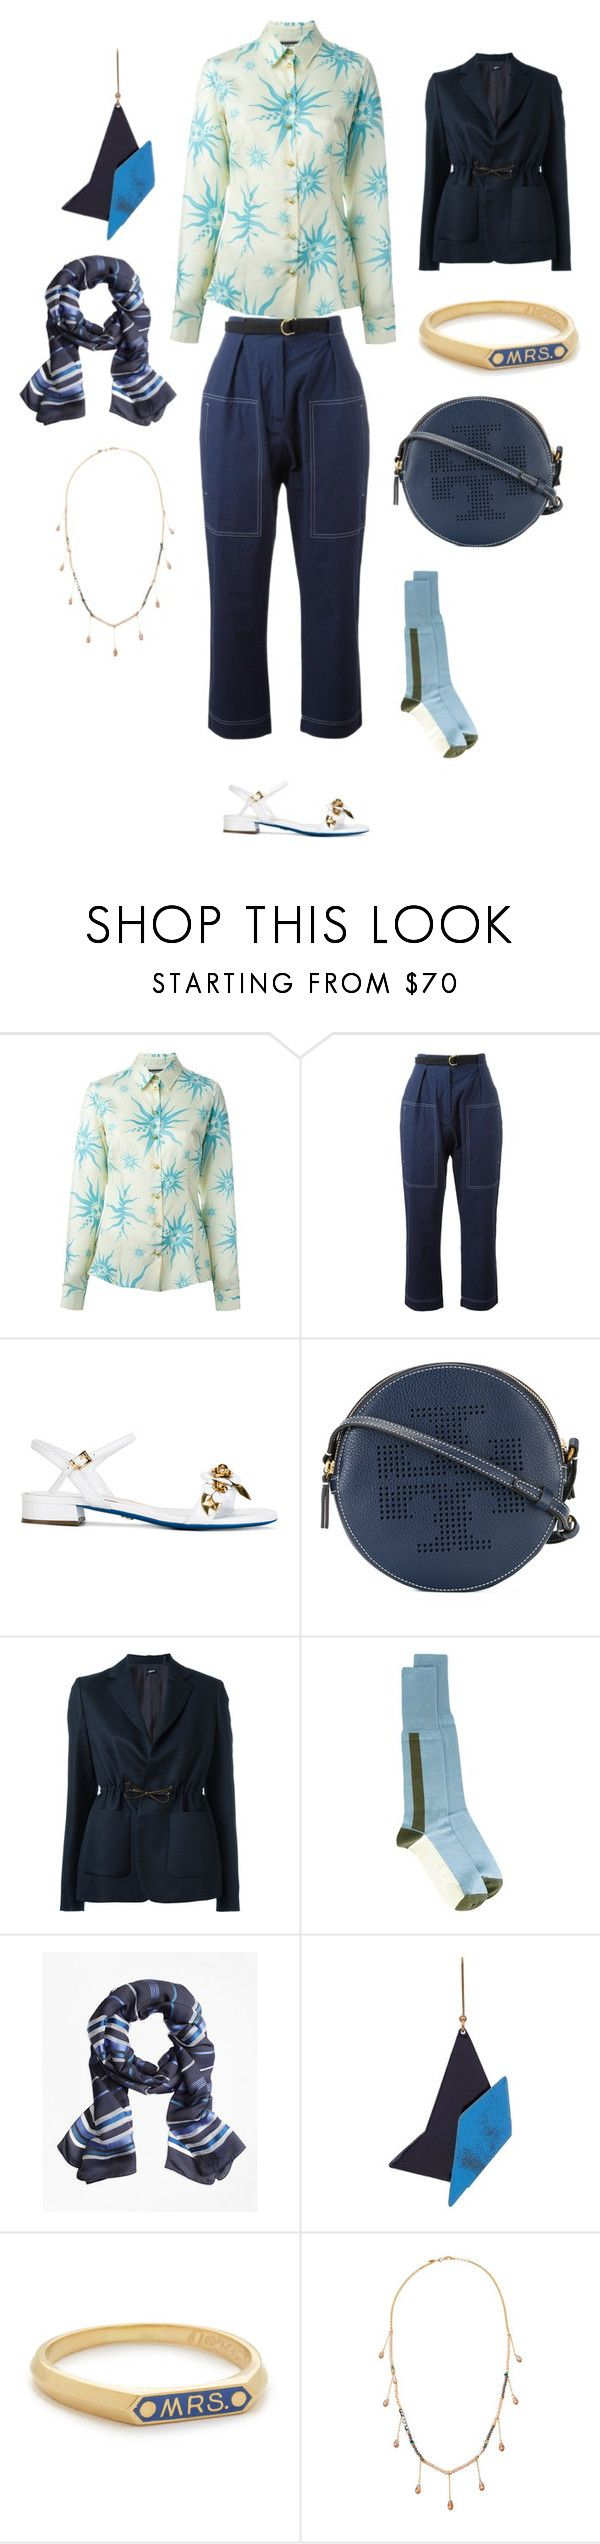 """what you choose"" by emmamegan-5678 ❤ liked on Polyvore featuring FAUSTO PUGLISI, Marni, Loriblu, Tory Burch, Jil Sander Navy, Brooks Brothers, STELLA McCARTNEY, Nora Kogan, Emily & Ashley and modern"